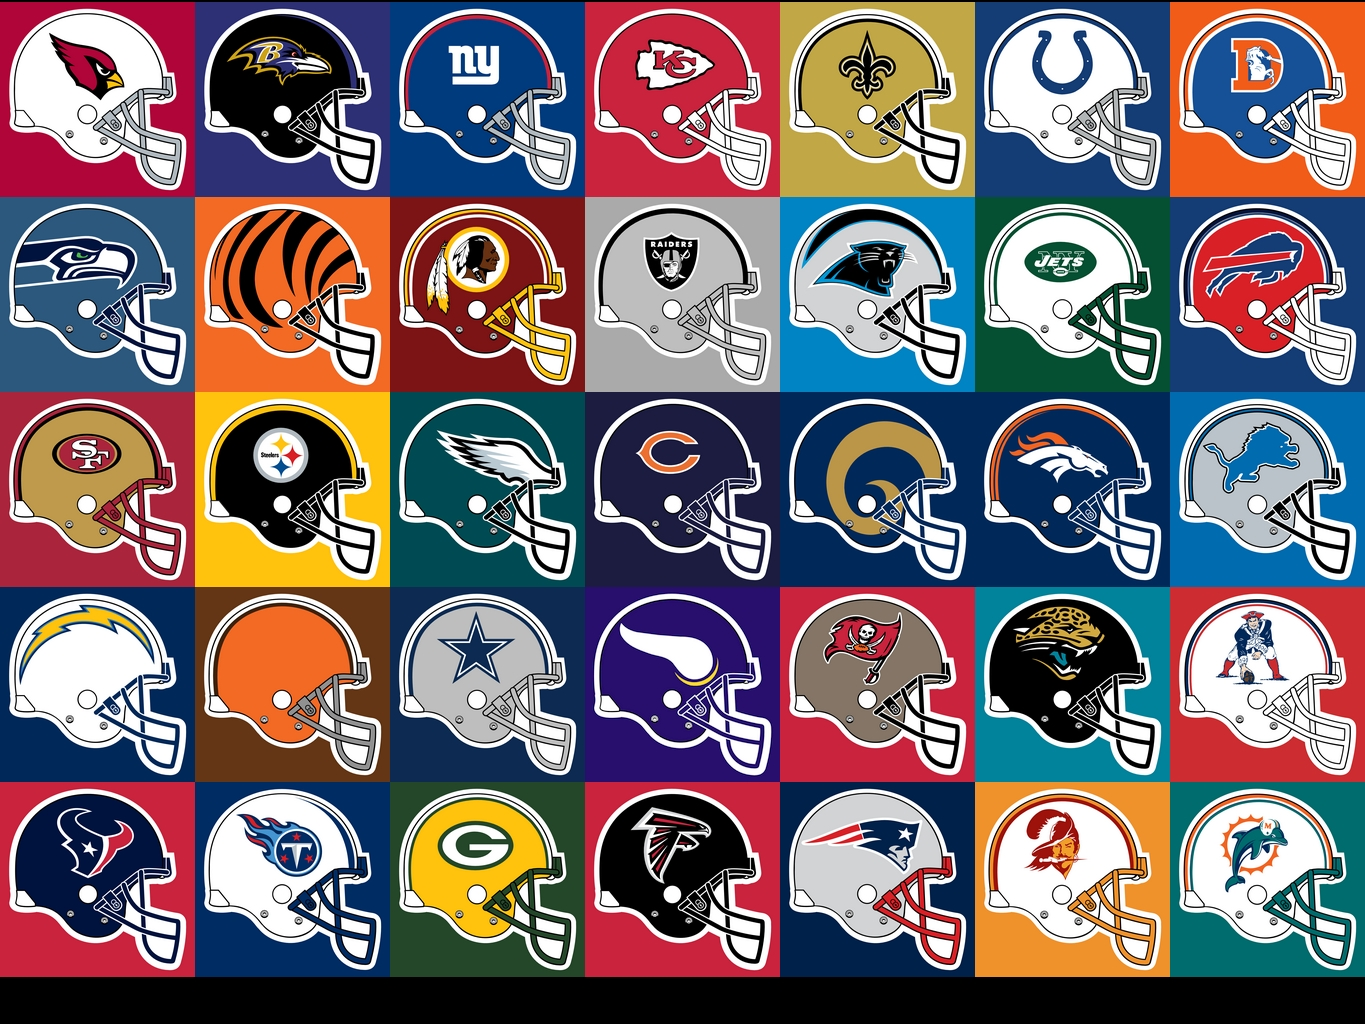 NFL Team Logos   Photo 276 of 416 phombocom 1365x1024